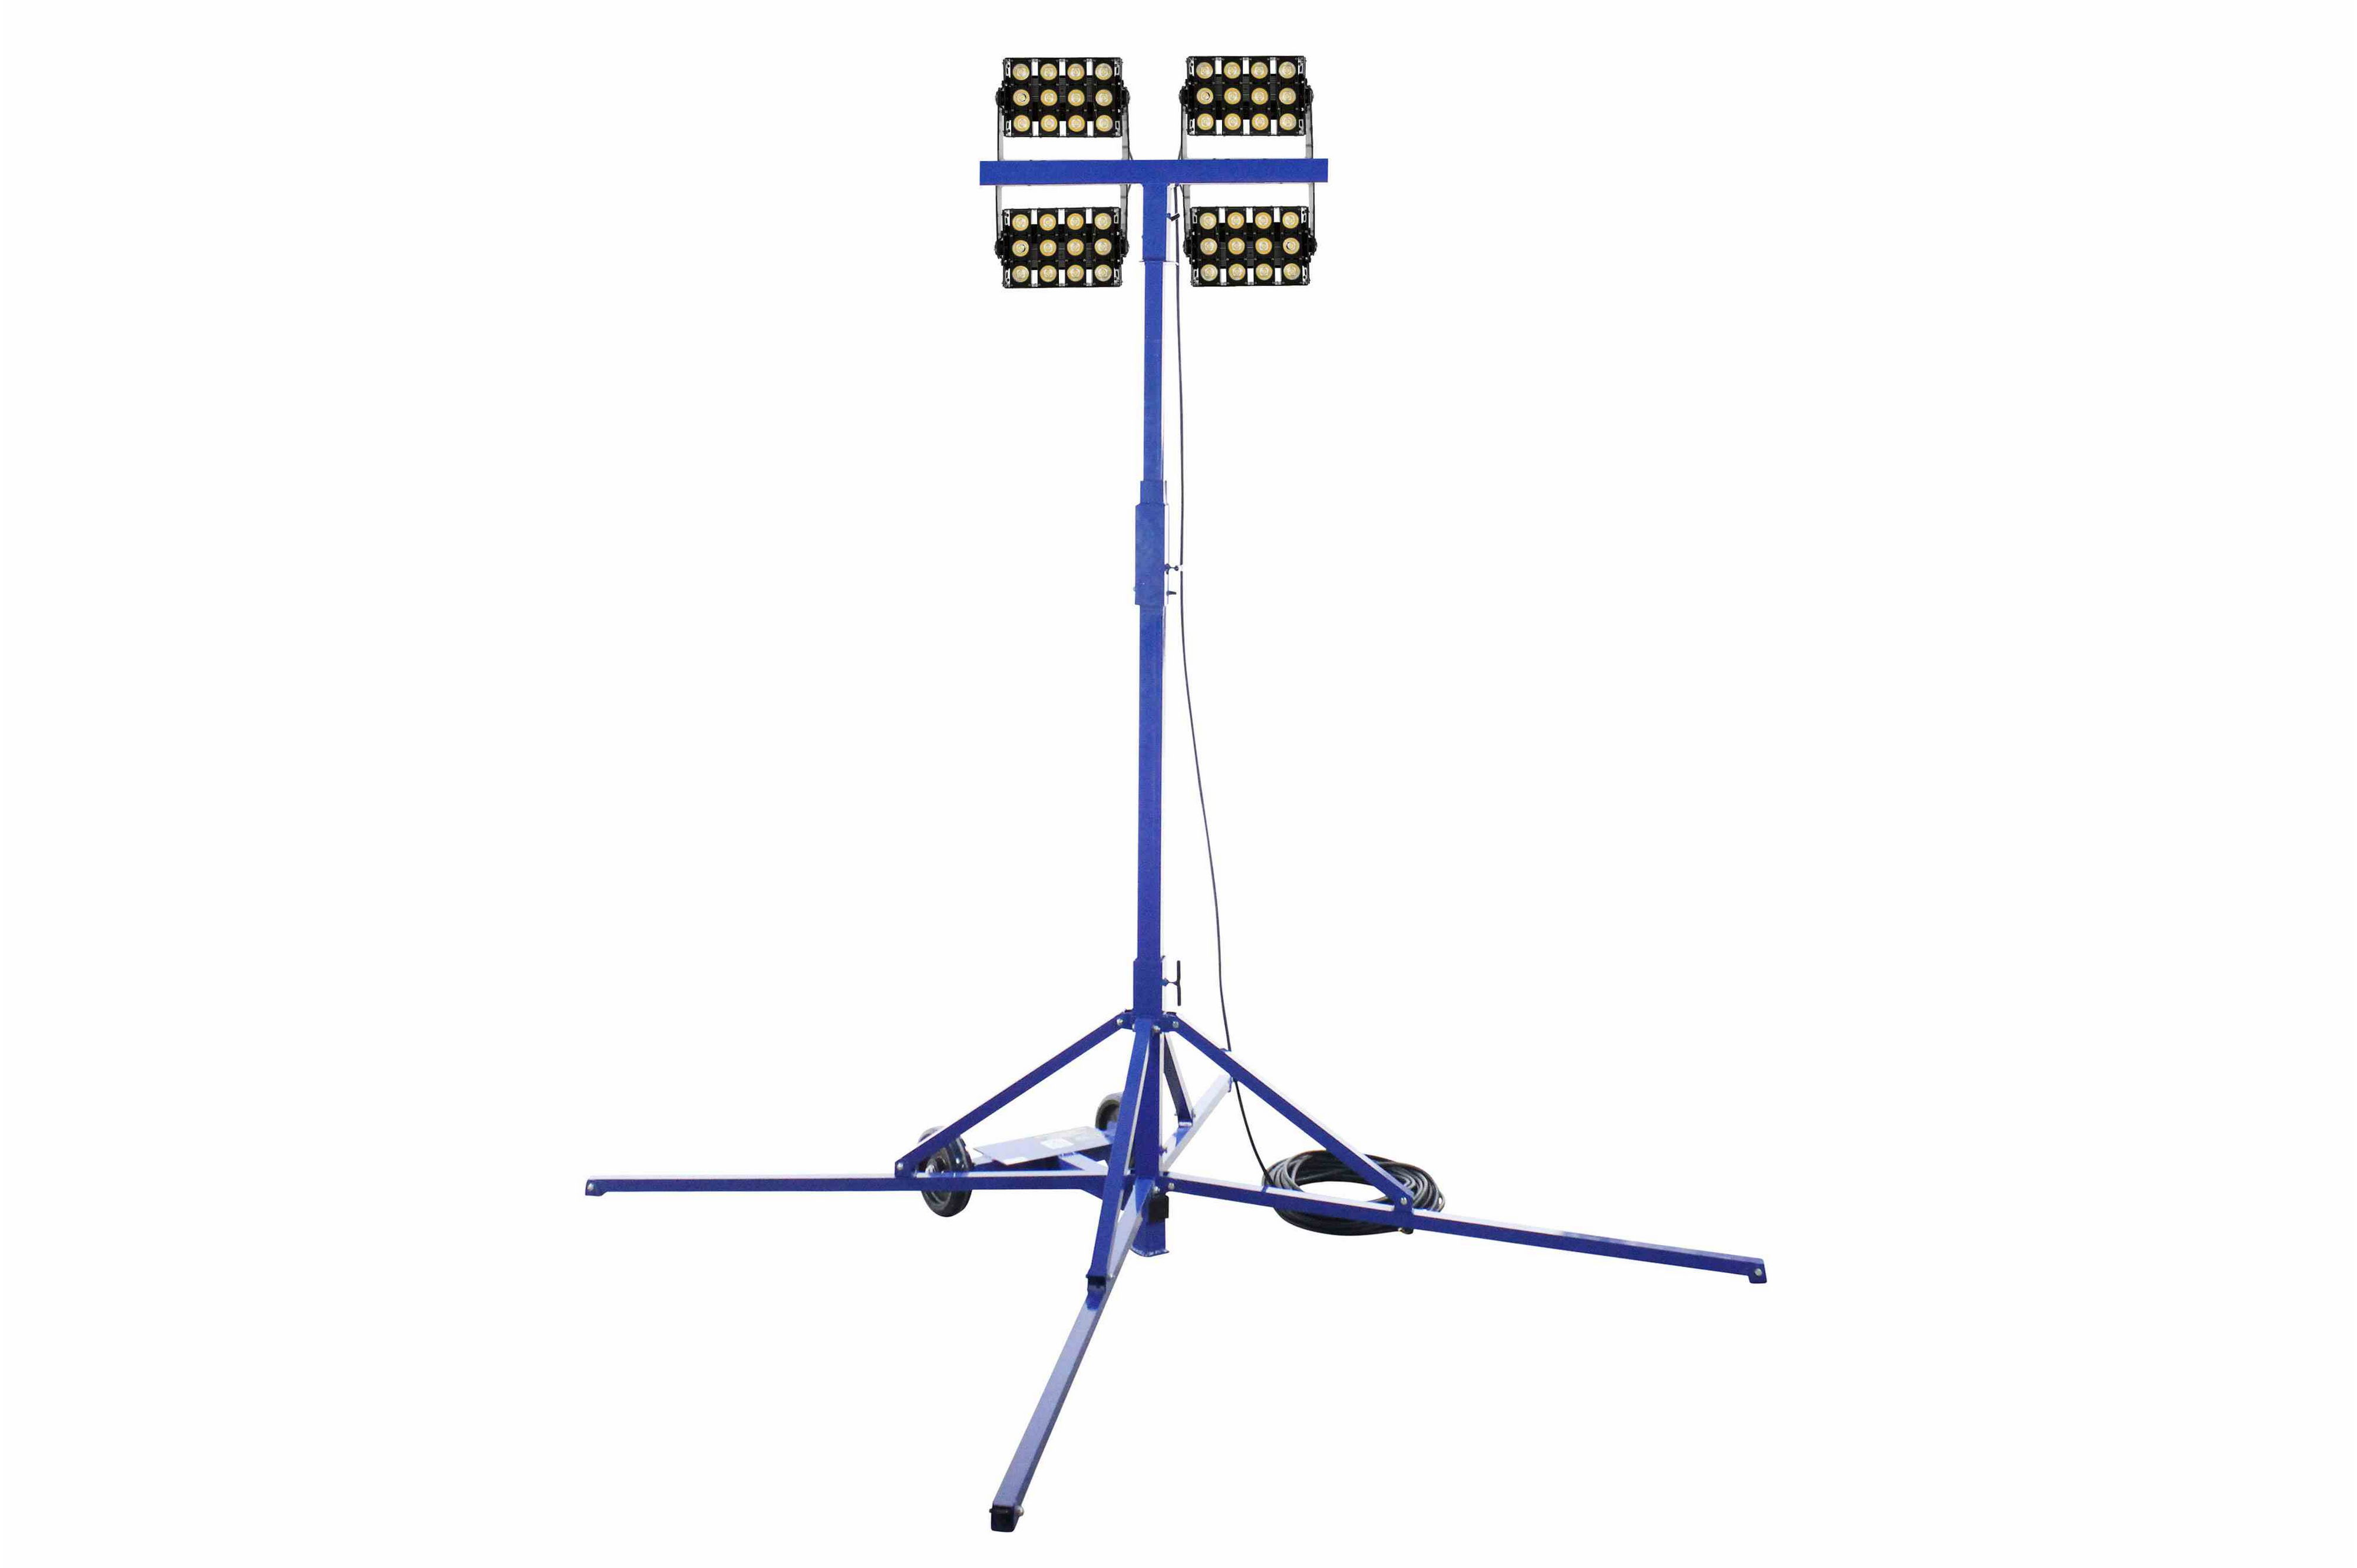 400 Watt Work Area Led Light Tower